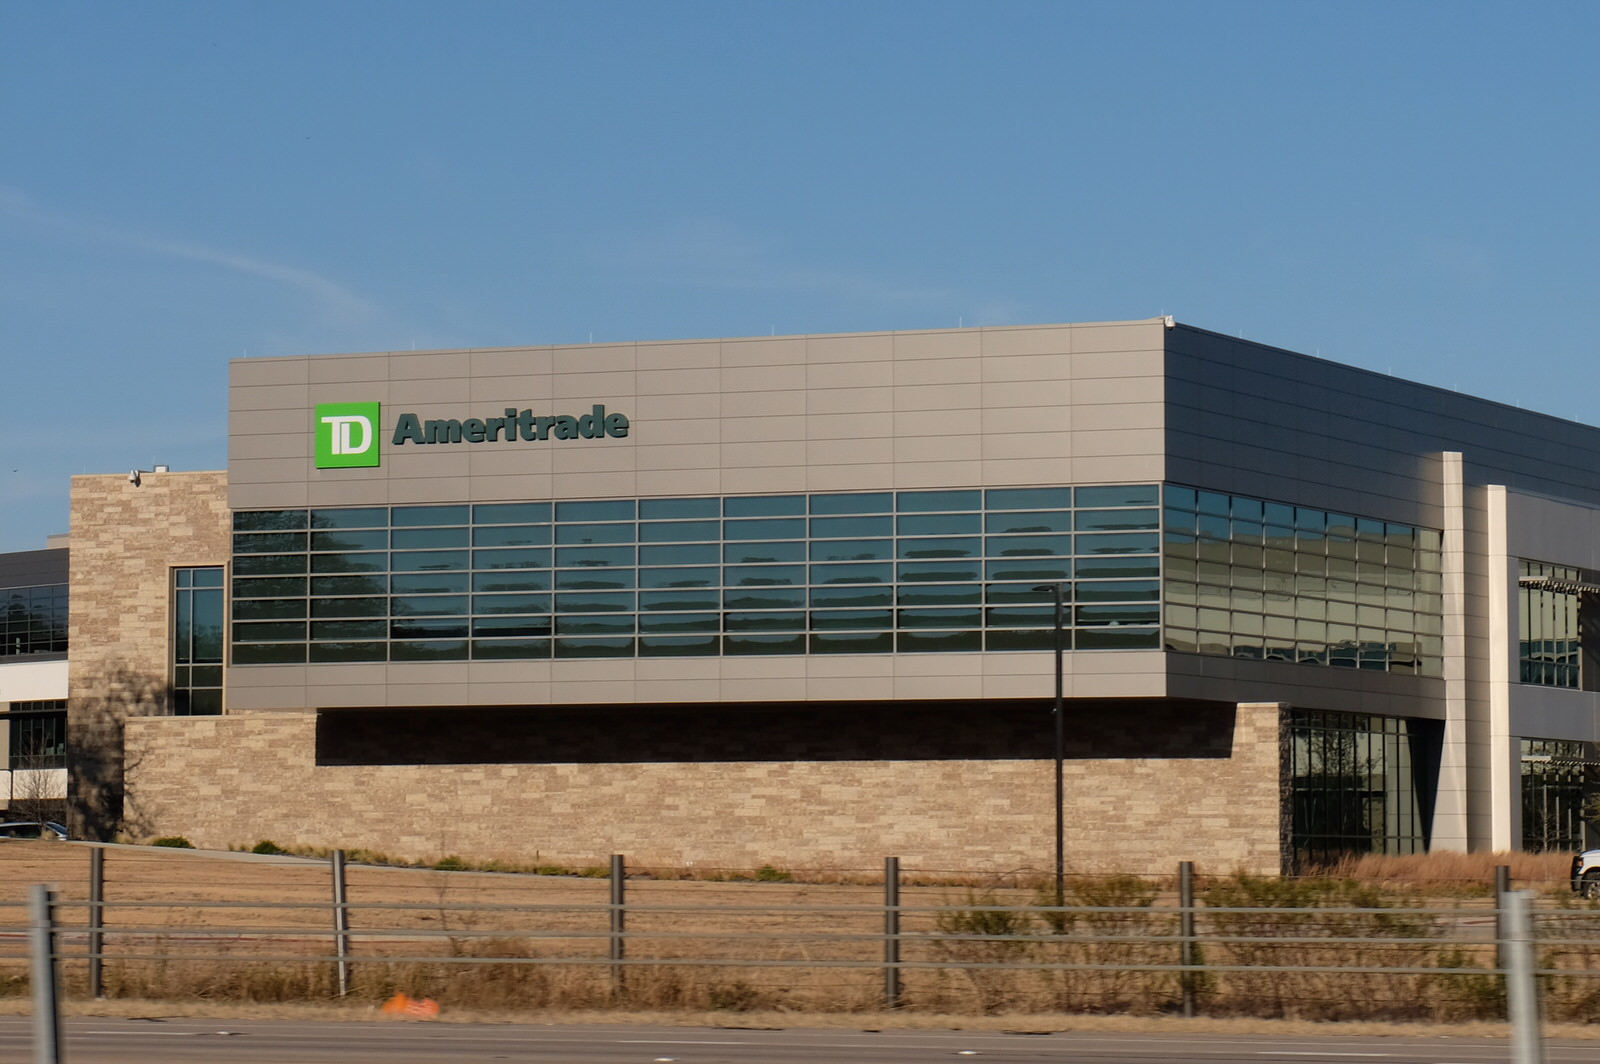 TD Ameritrade campus in Denton, Texas.